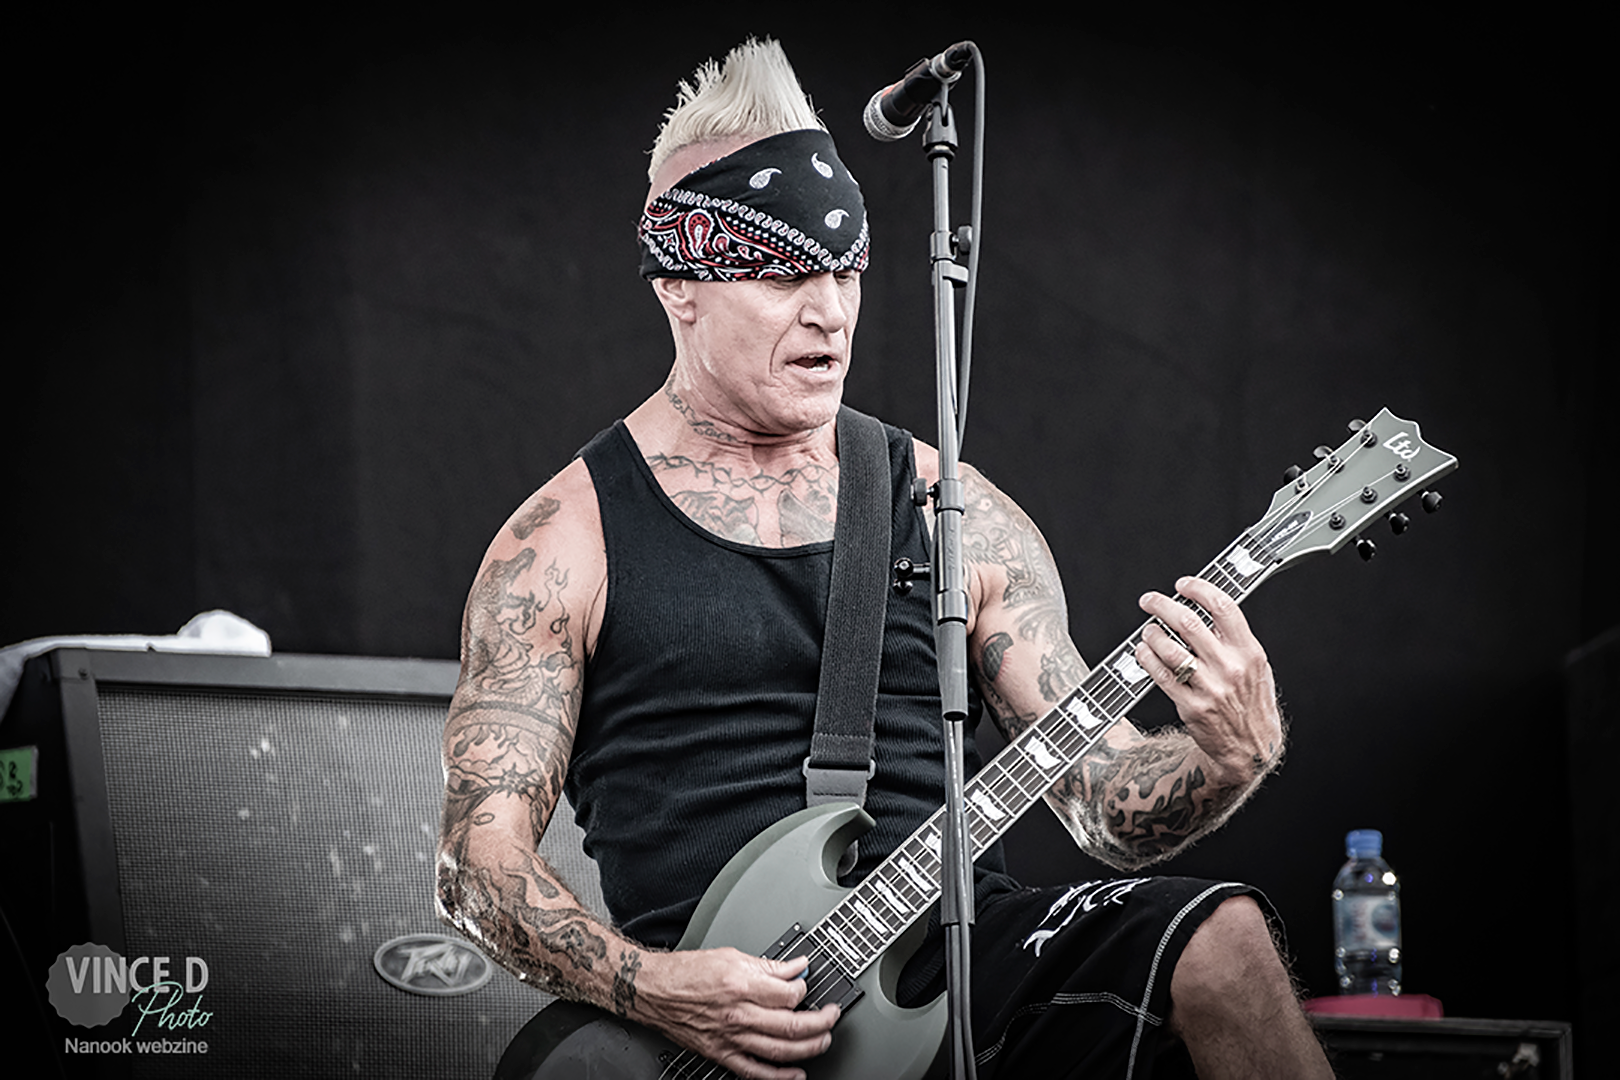 nanook-webzine-festival-hellfest-photos-concerts-report-Driancourt_vincedphoto_KNOTFEST_Sick-of-it-all_guitarist